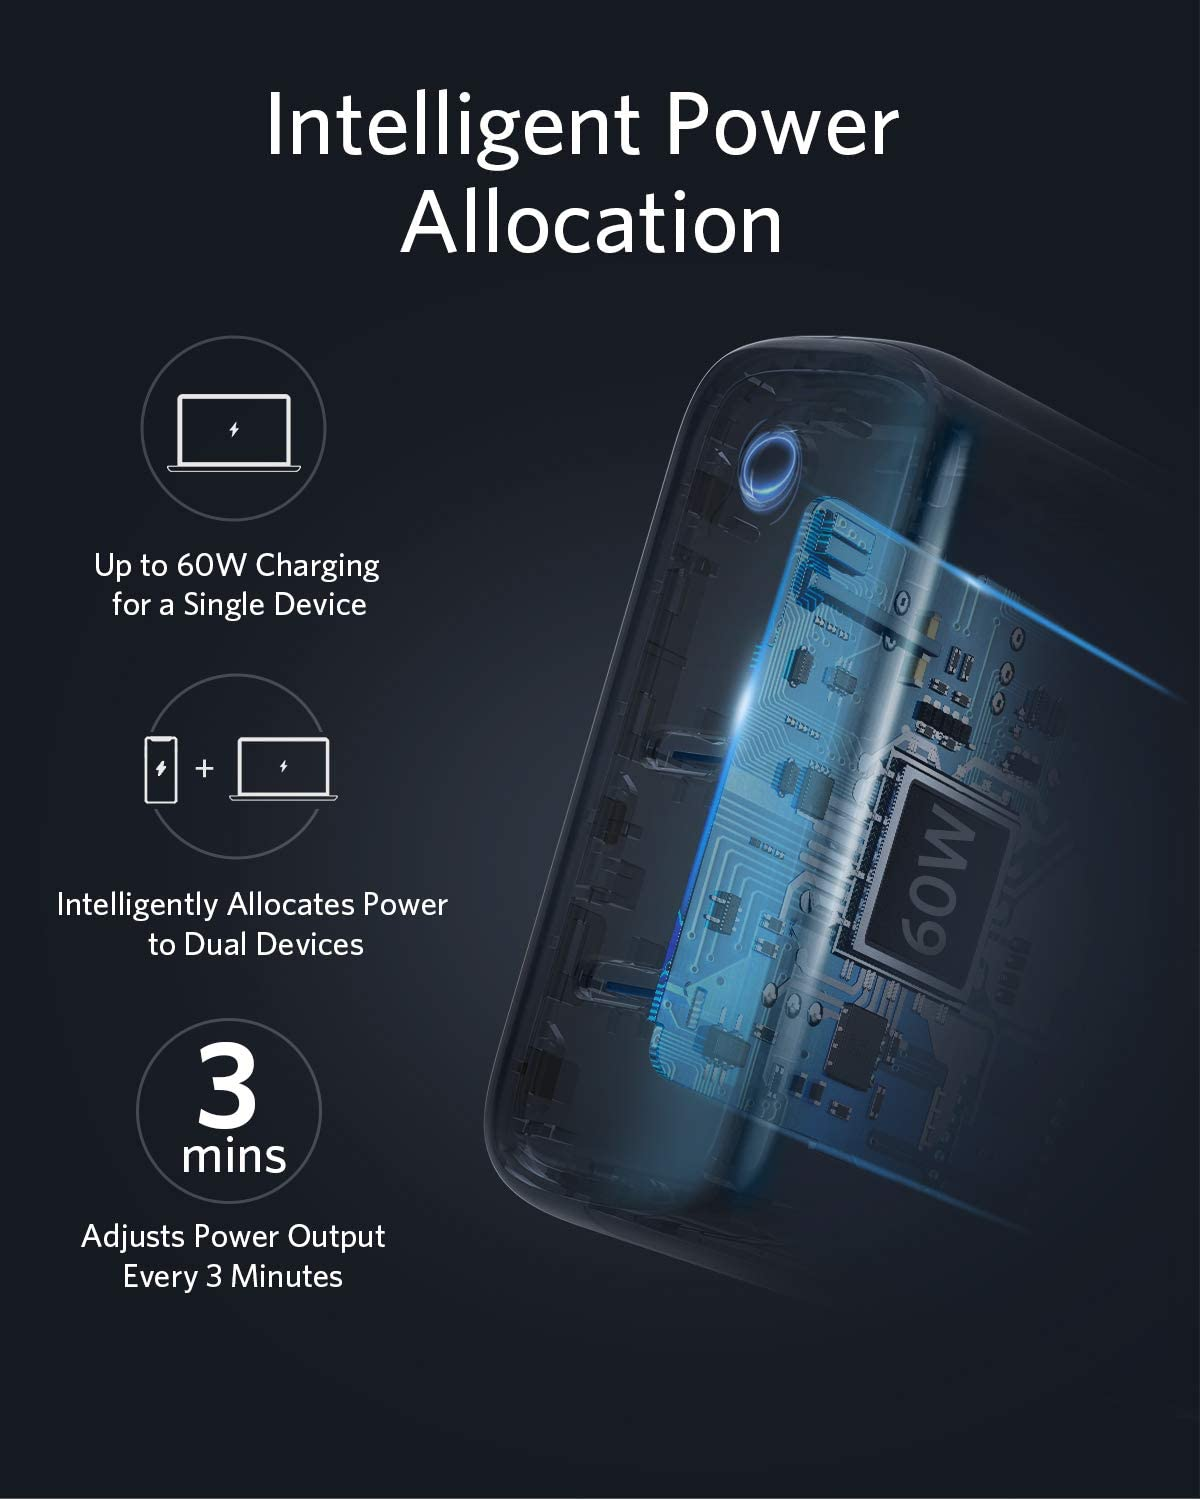 Galaxy and More PowerPort III 2-Port 60W USB C Charger for MacBook iPhone US//UK//EU Plug for Travel Anker 60W GaN /& PIQ 3.0 2-Port Type-C Charger with Intelligent Power Allocation iPad Pro